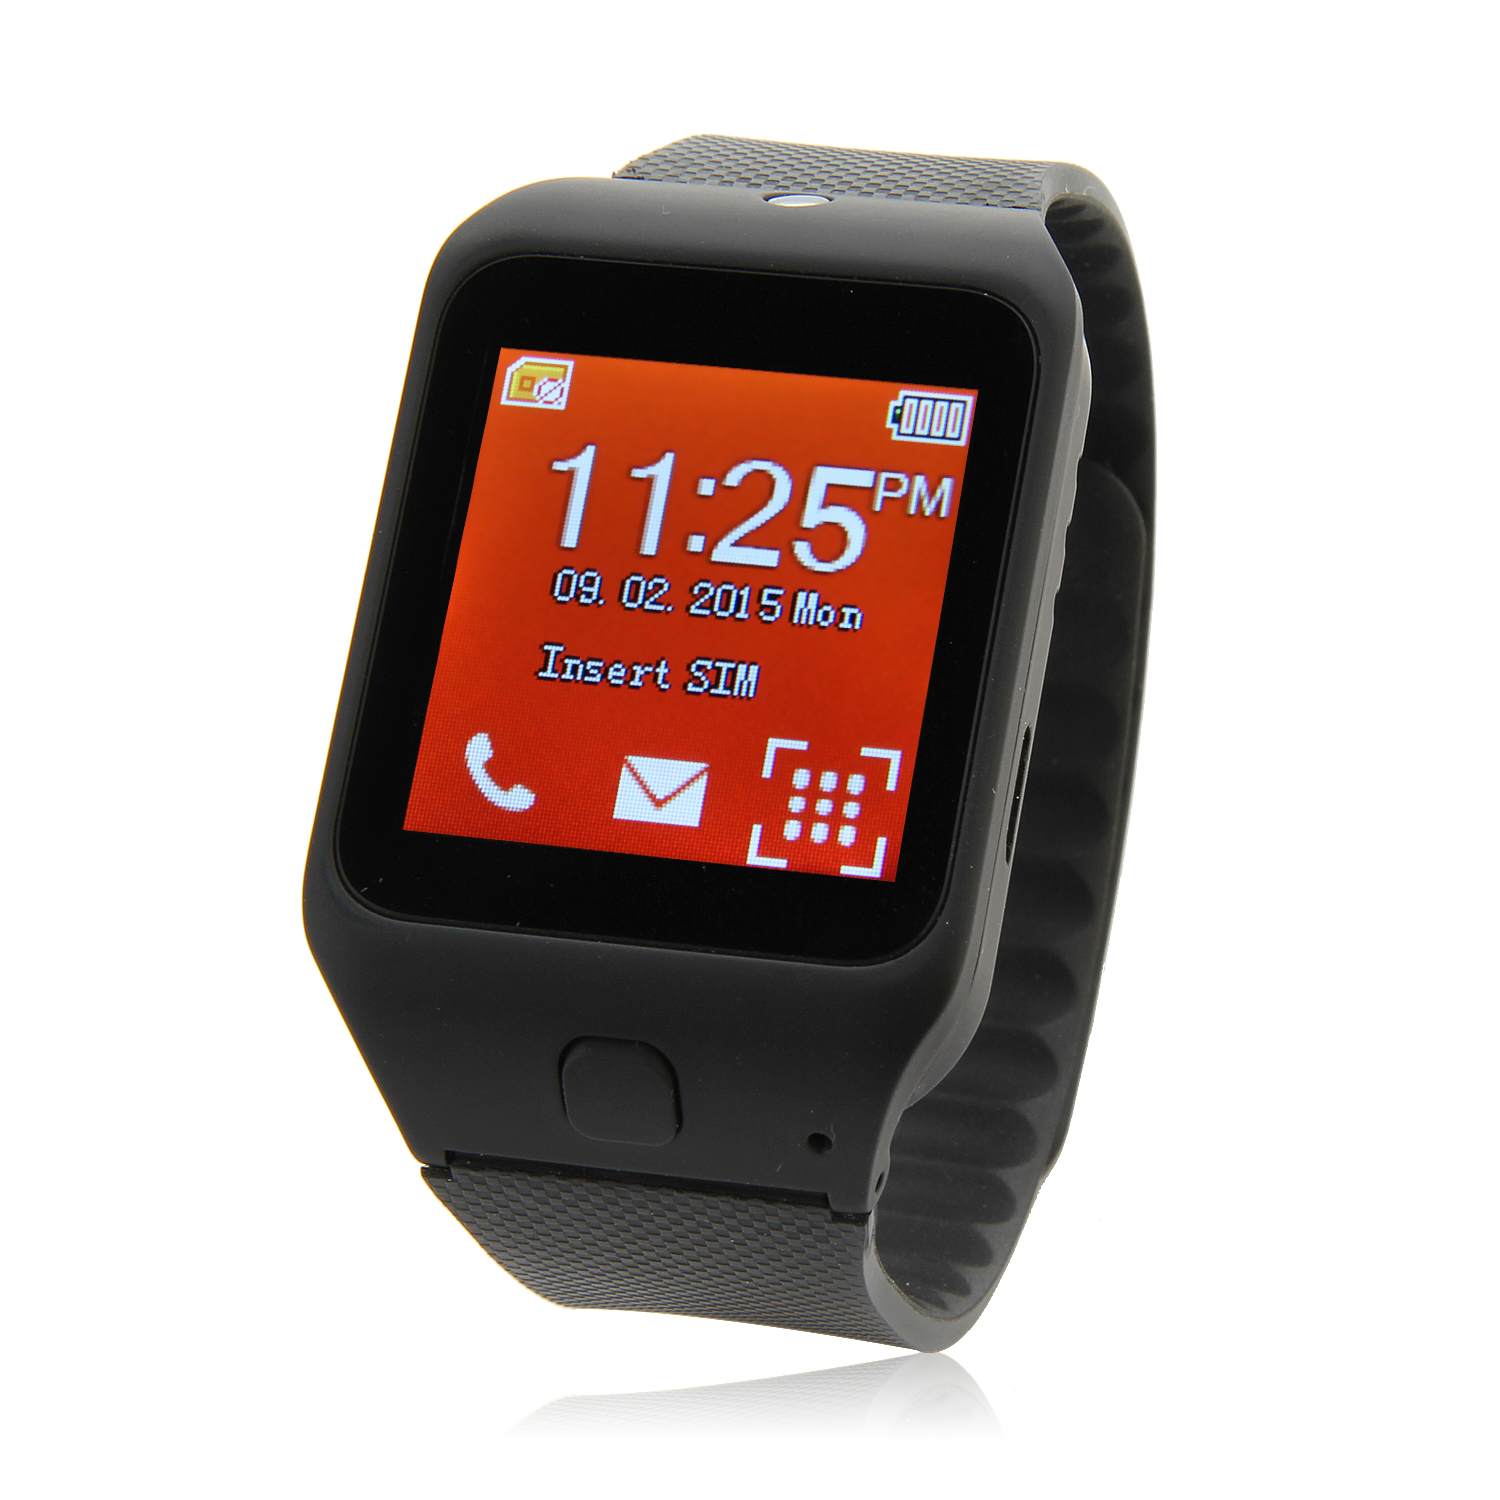 Atongm W003 Smart Watch Phone 1.44 Inch Touch Screen Bluetooth Camera FM Black